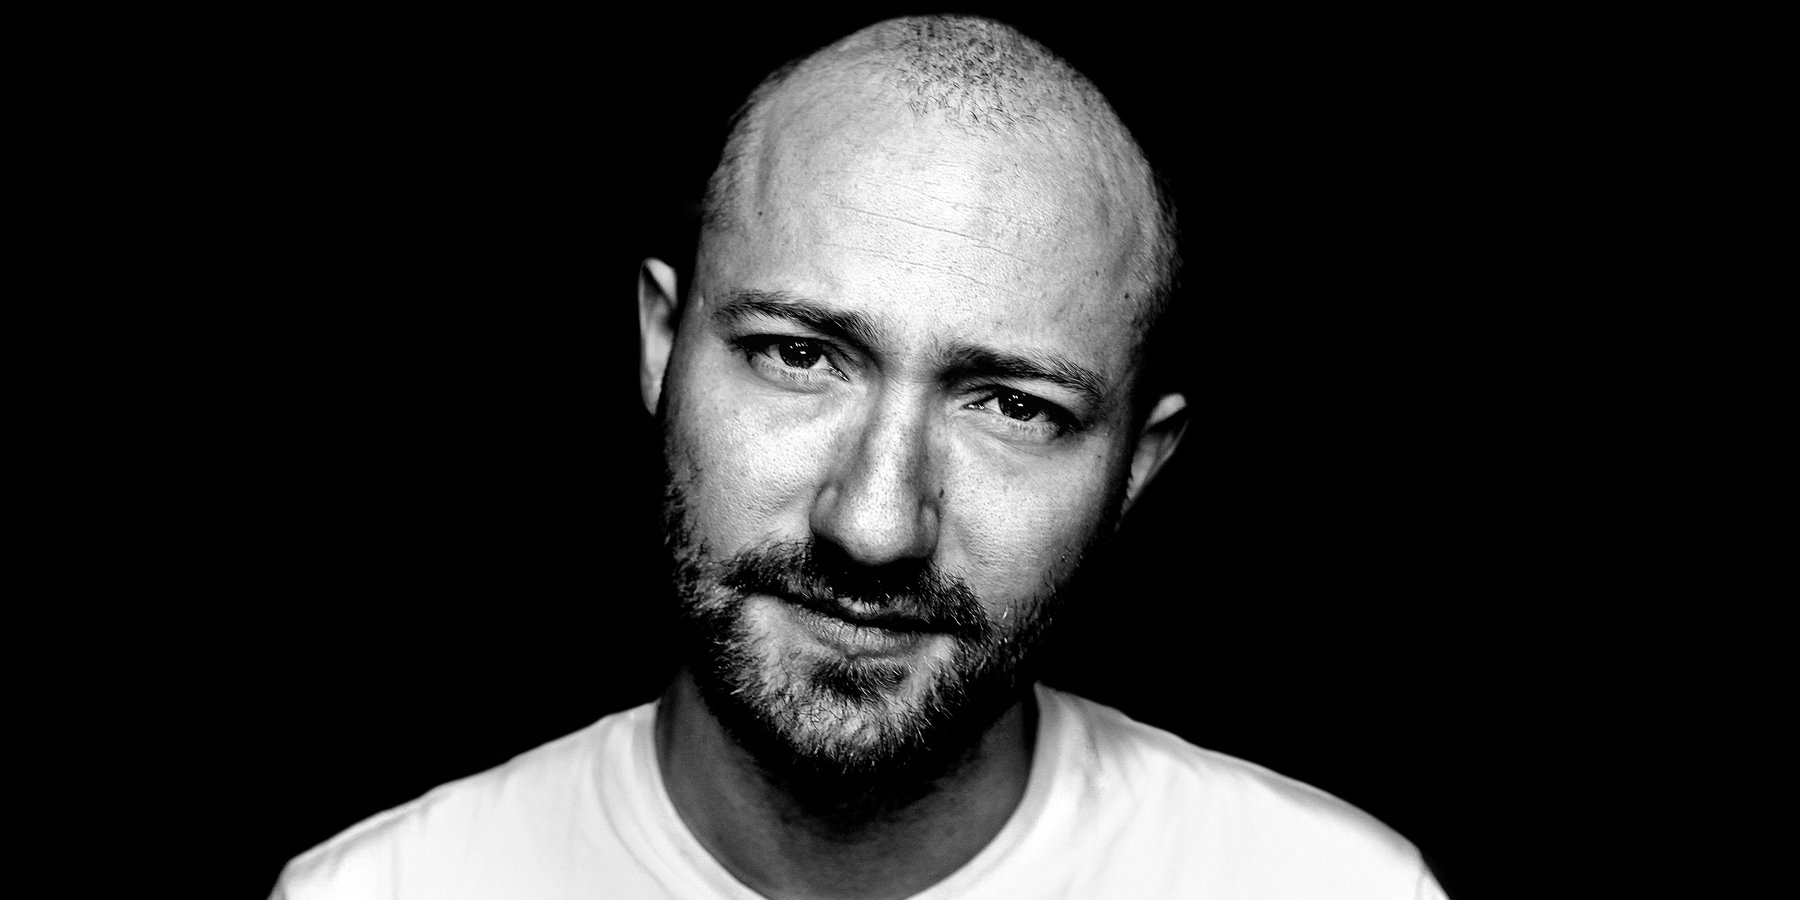 Berlin Called, We Answered: A conversation with Paul Kalkbrenner